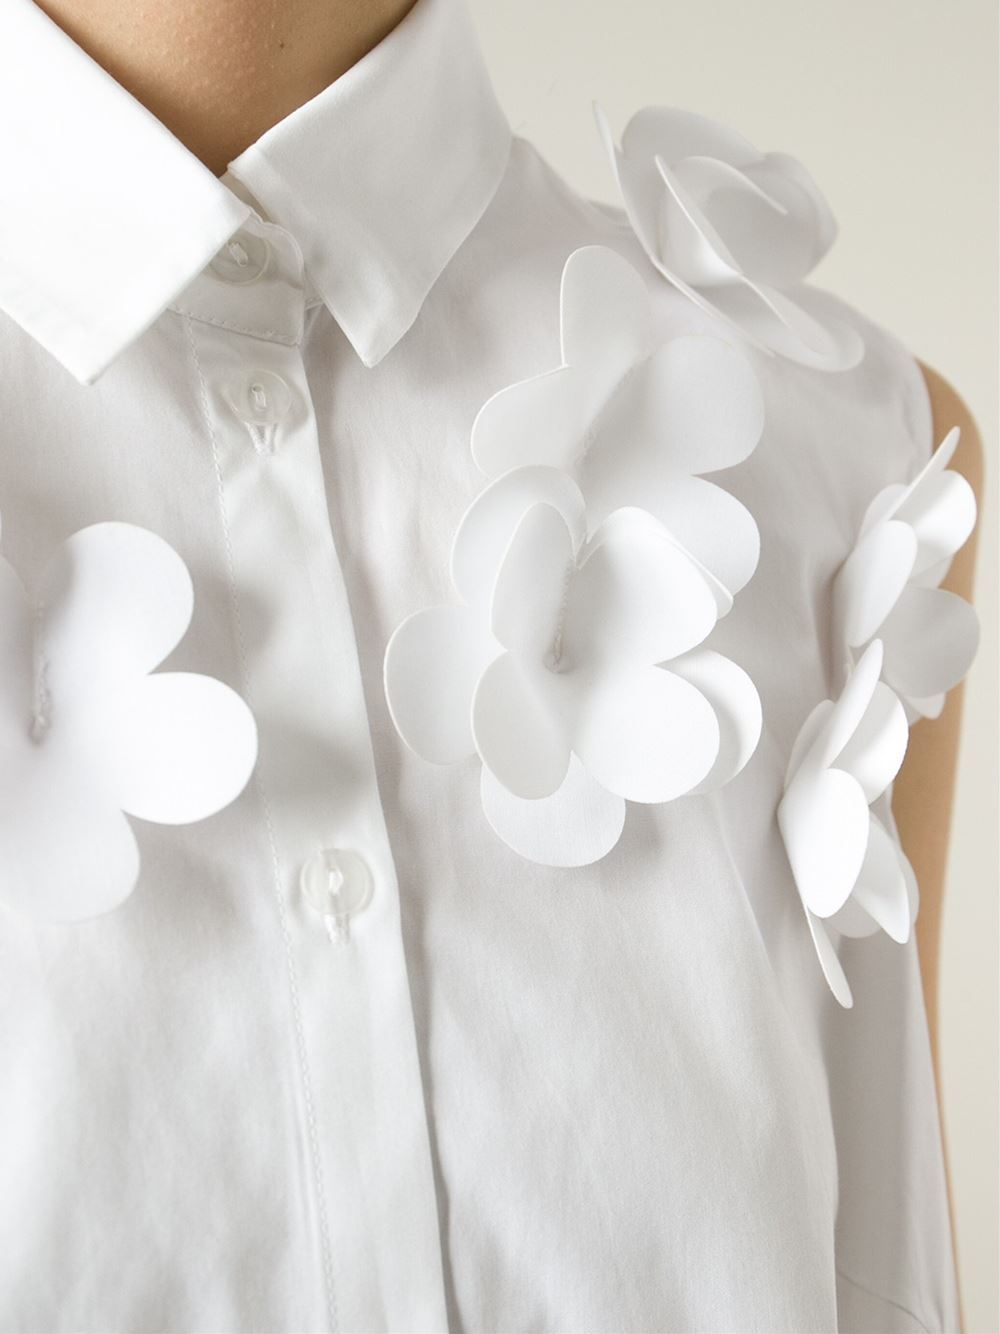 white shirt with 3d flower applique sewing idea textile embellishment fashion design detail - Clothing Design Ideas